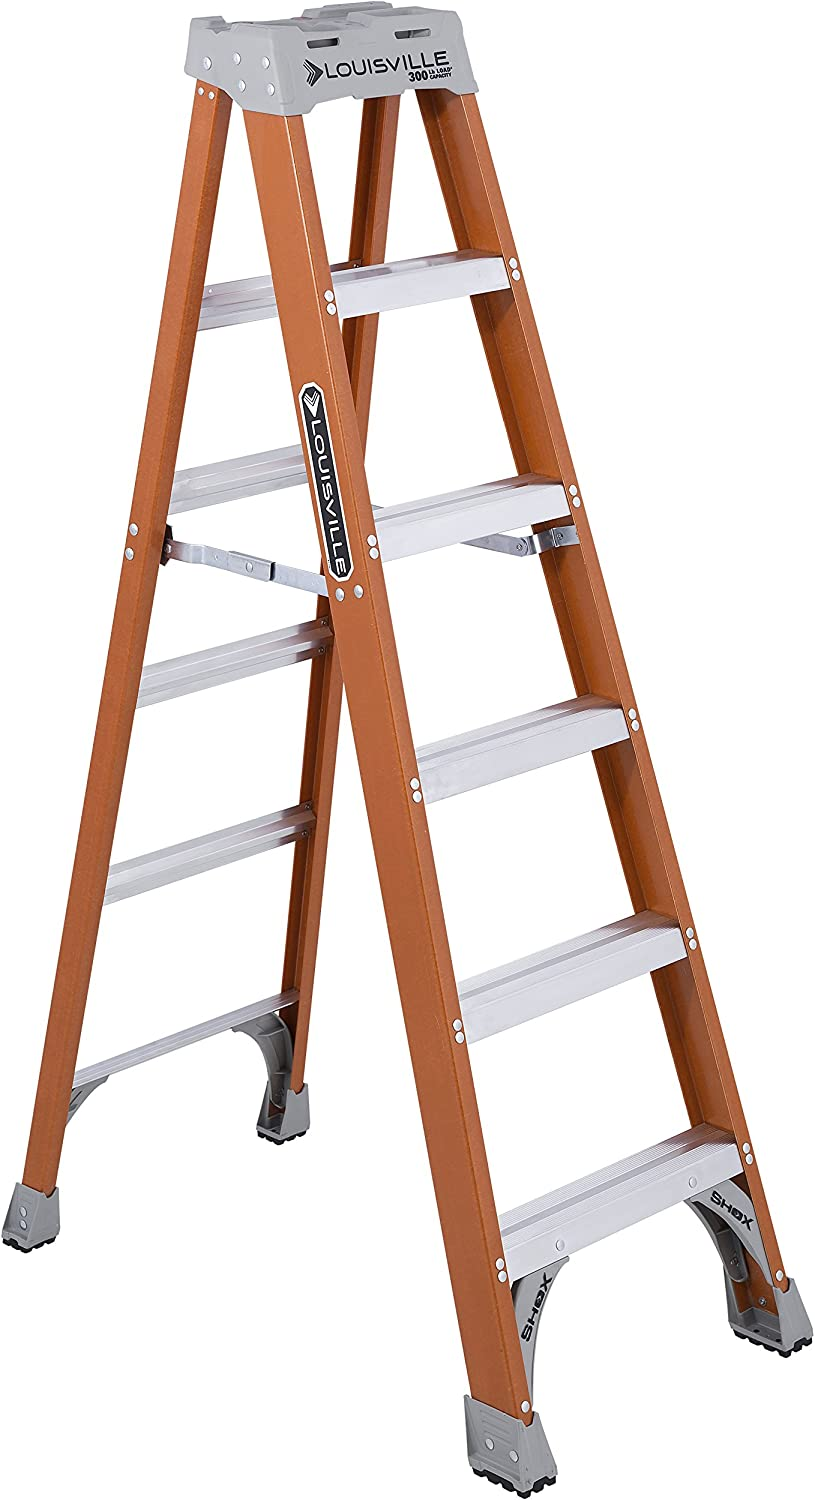 Louisville Ladder 6-Foot Fiberglass Ladder, 300-Pound Capacity | eDesign Tools for DIY Enthusiasts by Revision Custom Home Design | eDesign Tribe Blog